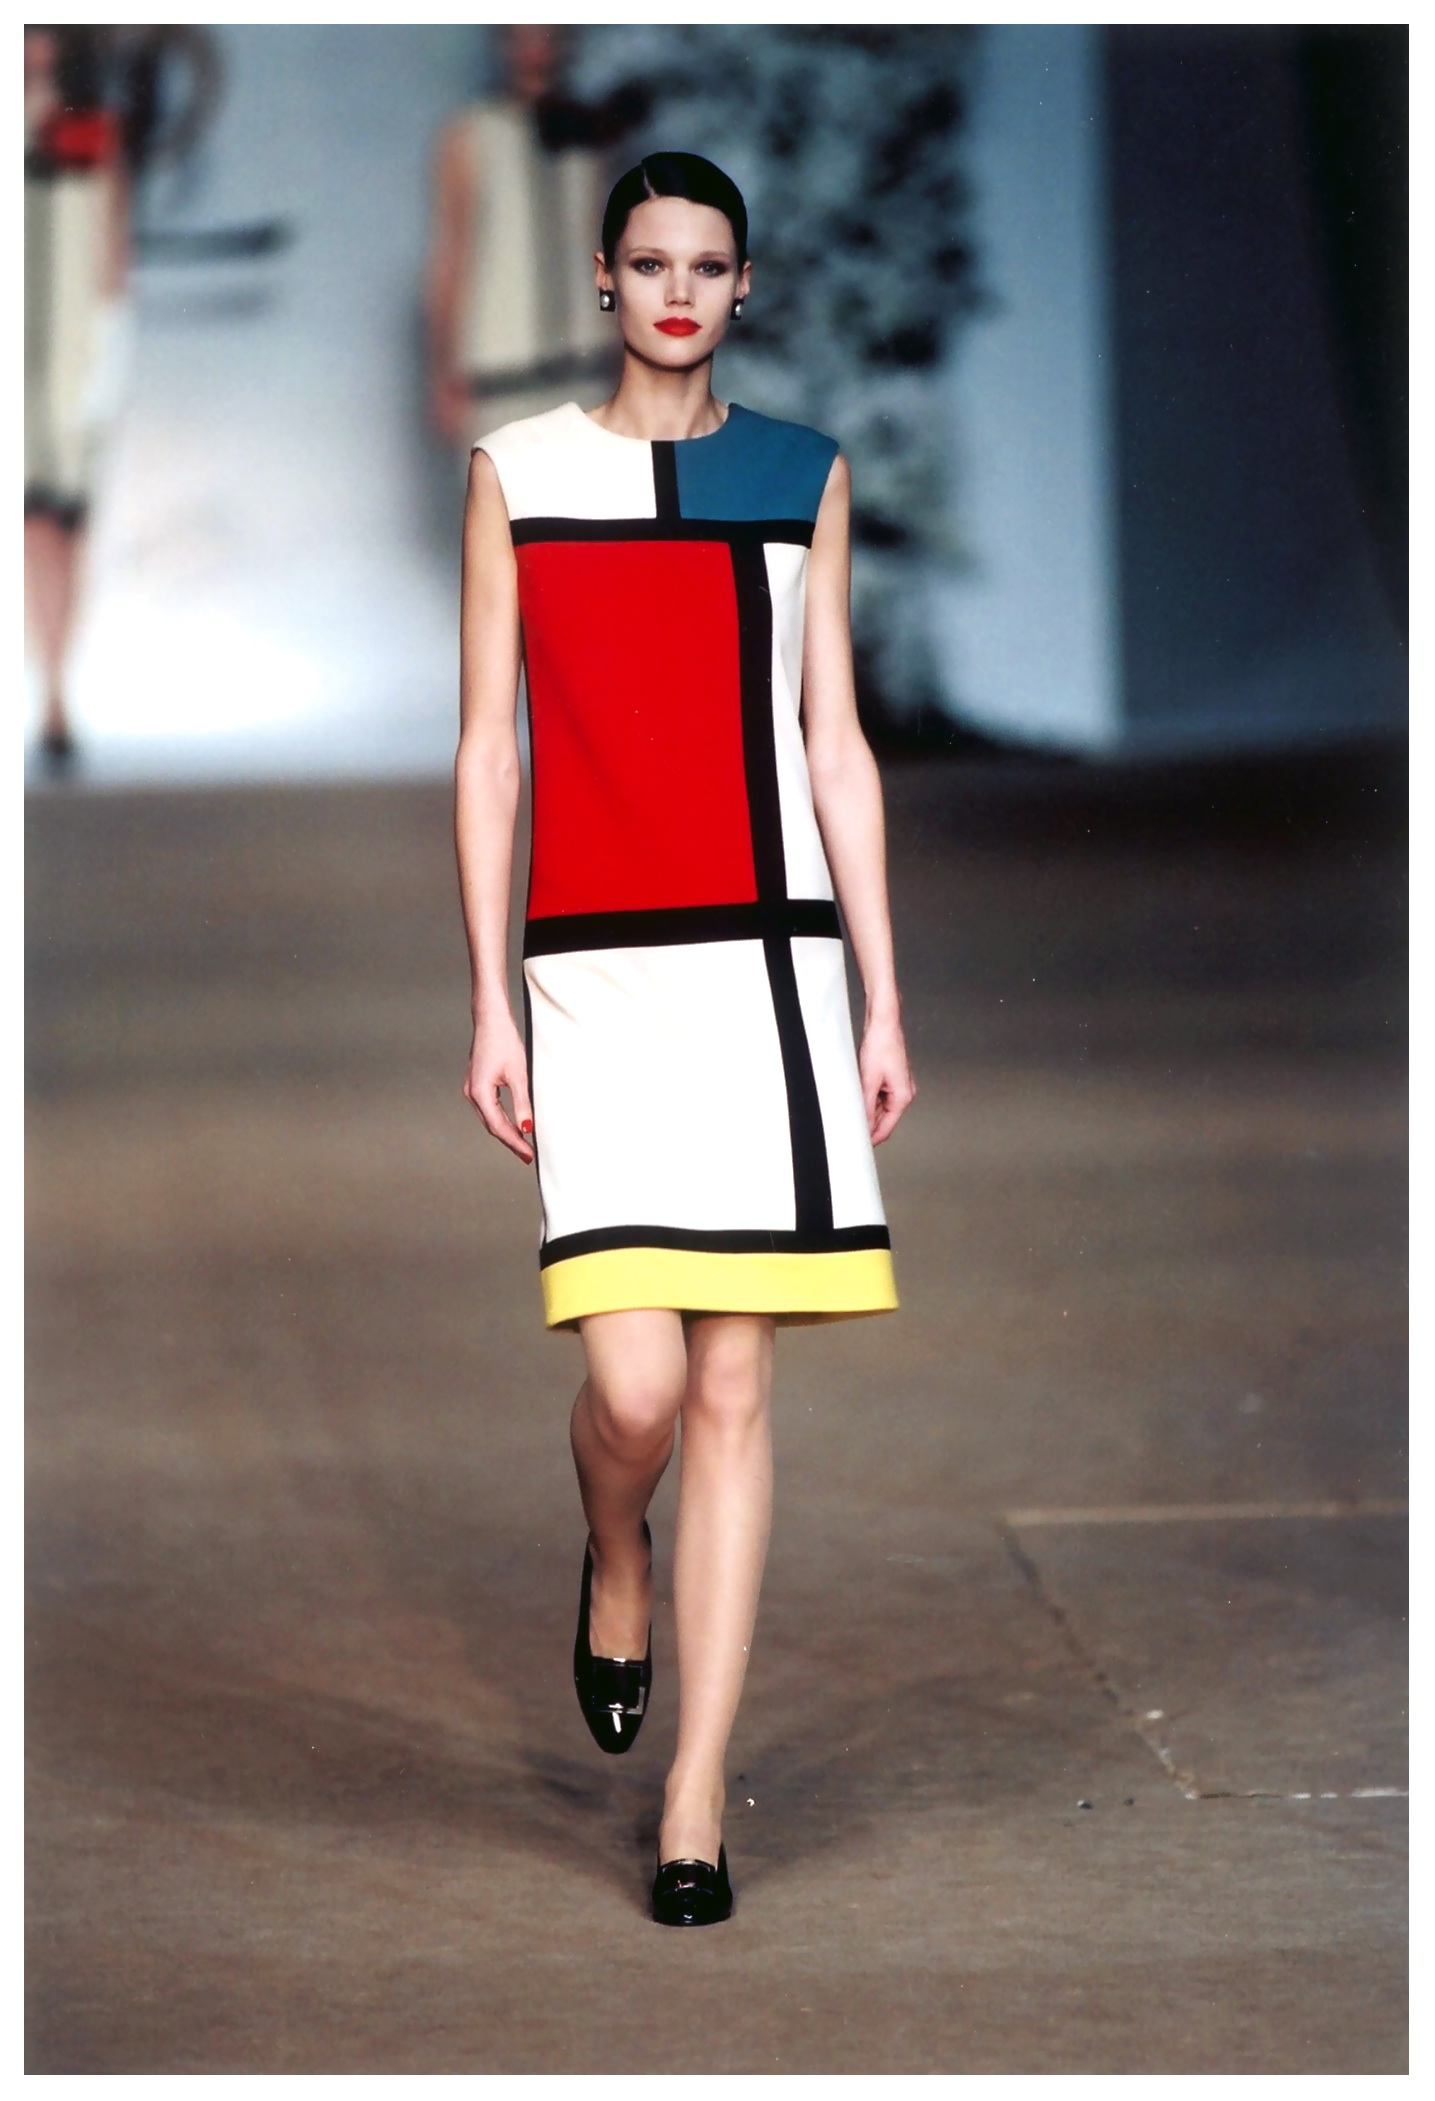 Sonia Delaunay: the dress of the future – Kate Davies Designs